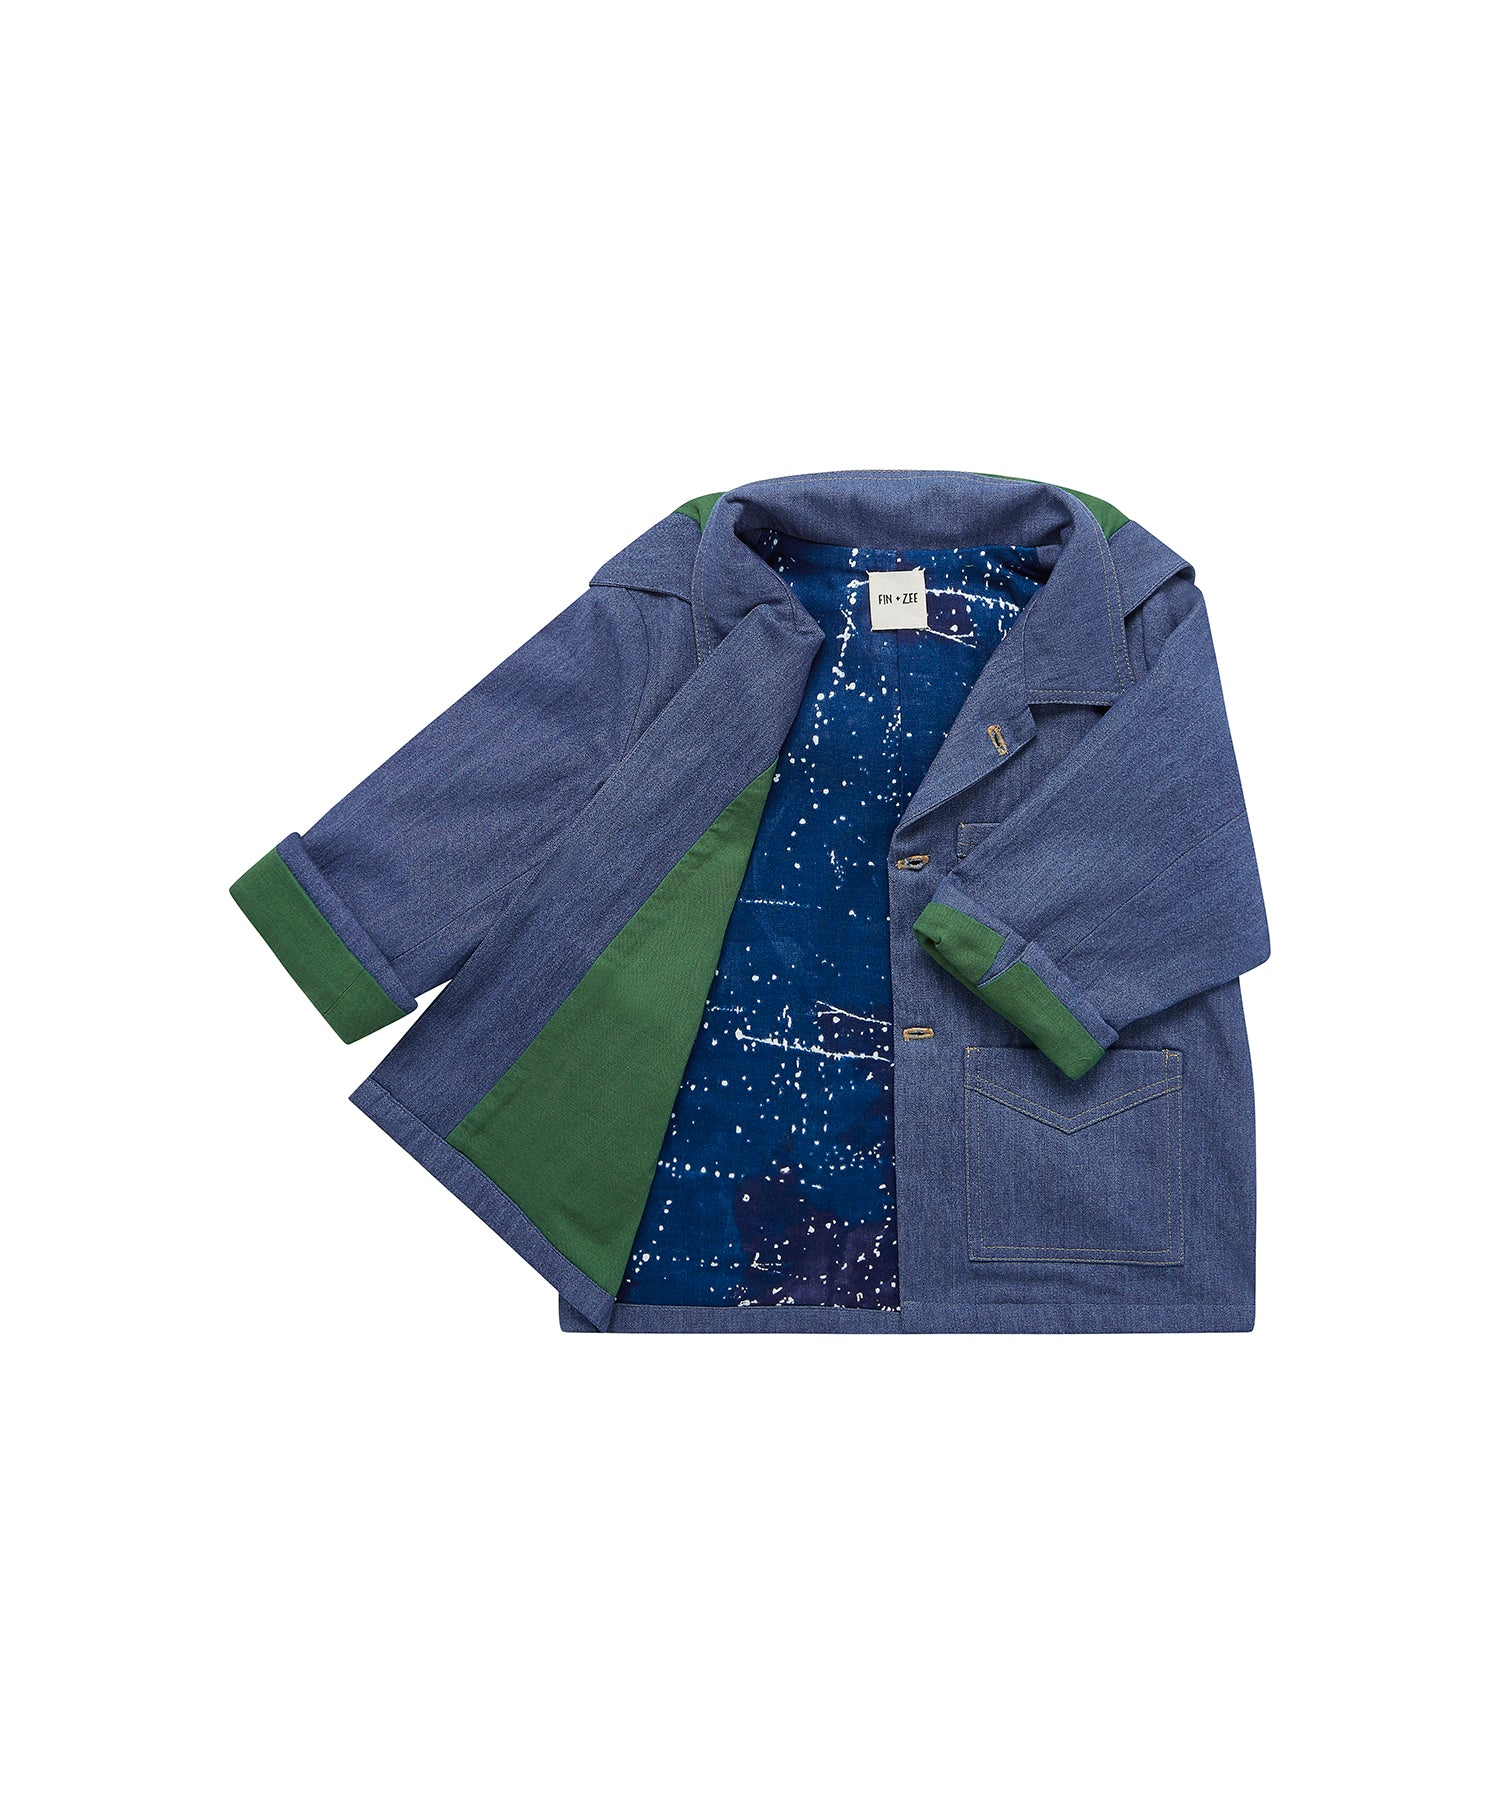 le Planet Denim Jacket